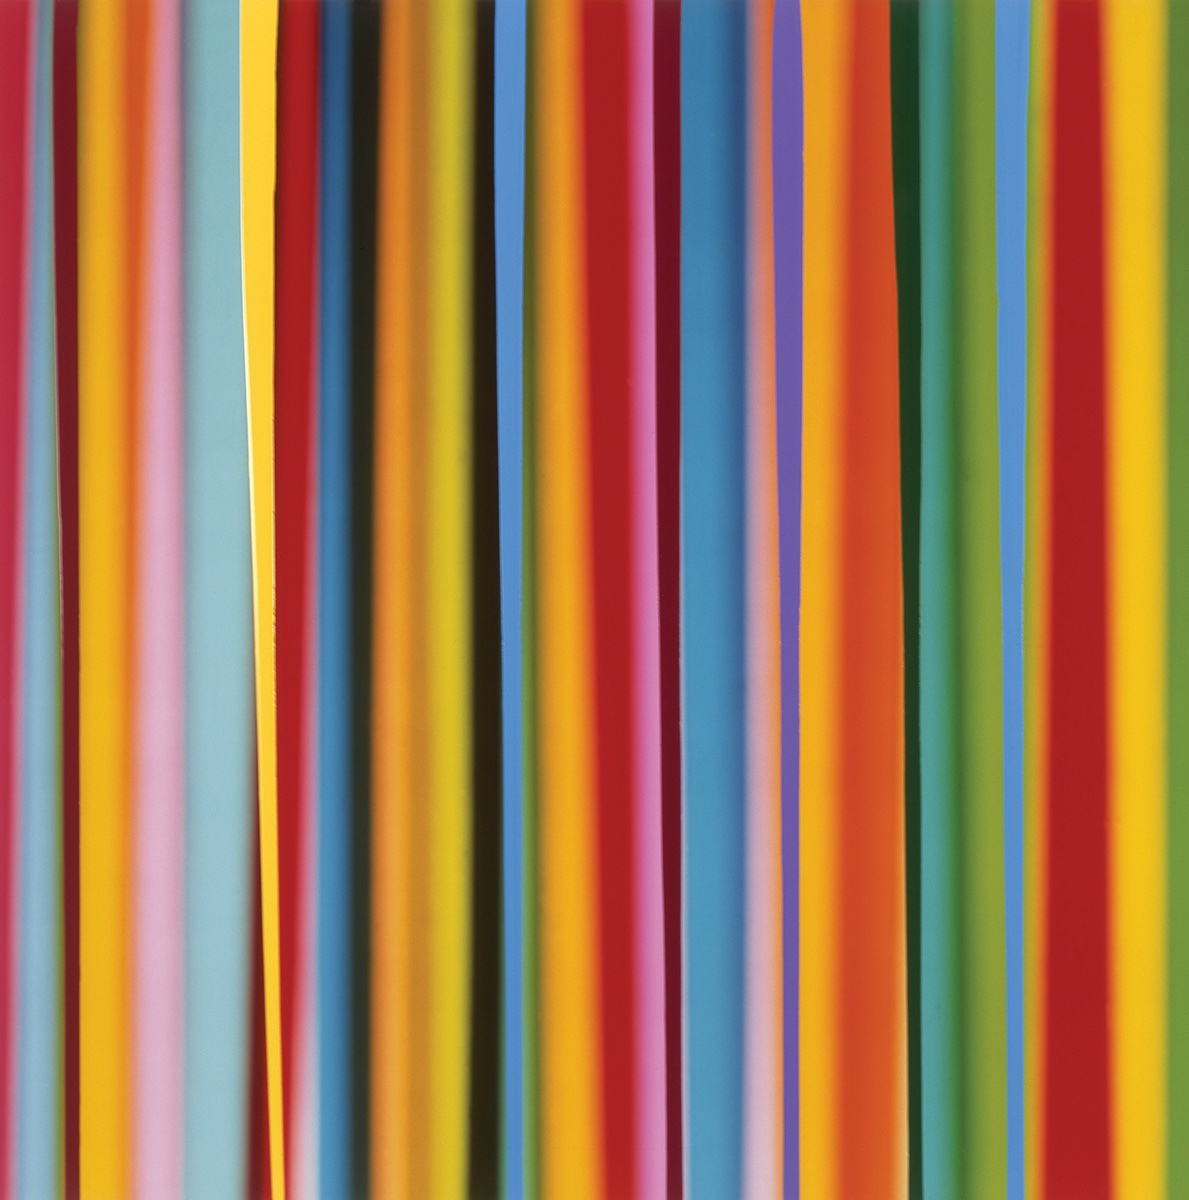 Rob and Nick Carter - RN352, Vertical Lines, Light and Paint, 2004 · © Copyright 2017